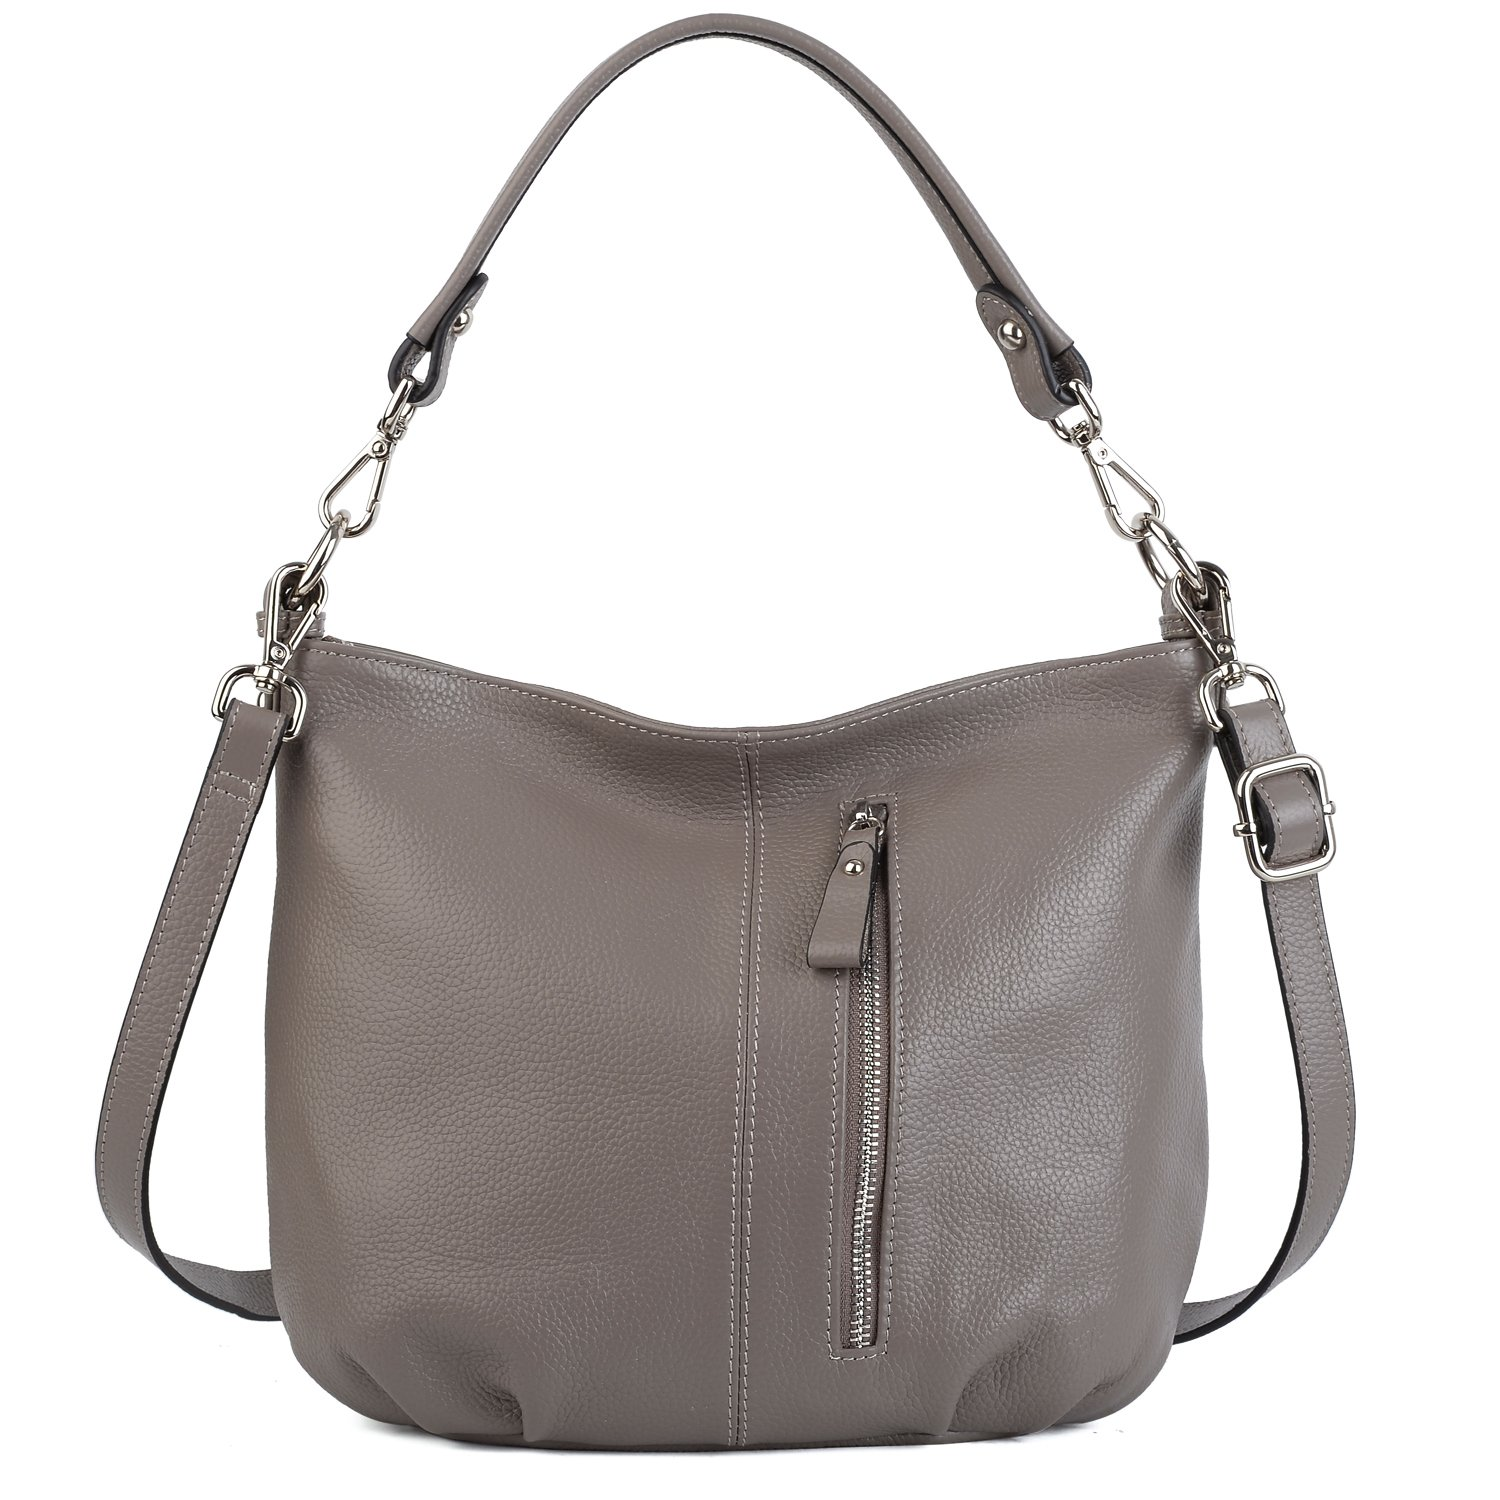 YALUXE Women's Front Pocket Soft Cowhide Leather Small Mini Purse Hobo Style Shoulder Bag Grey